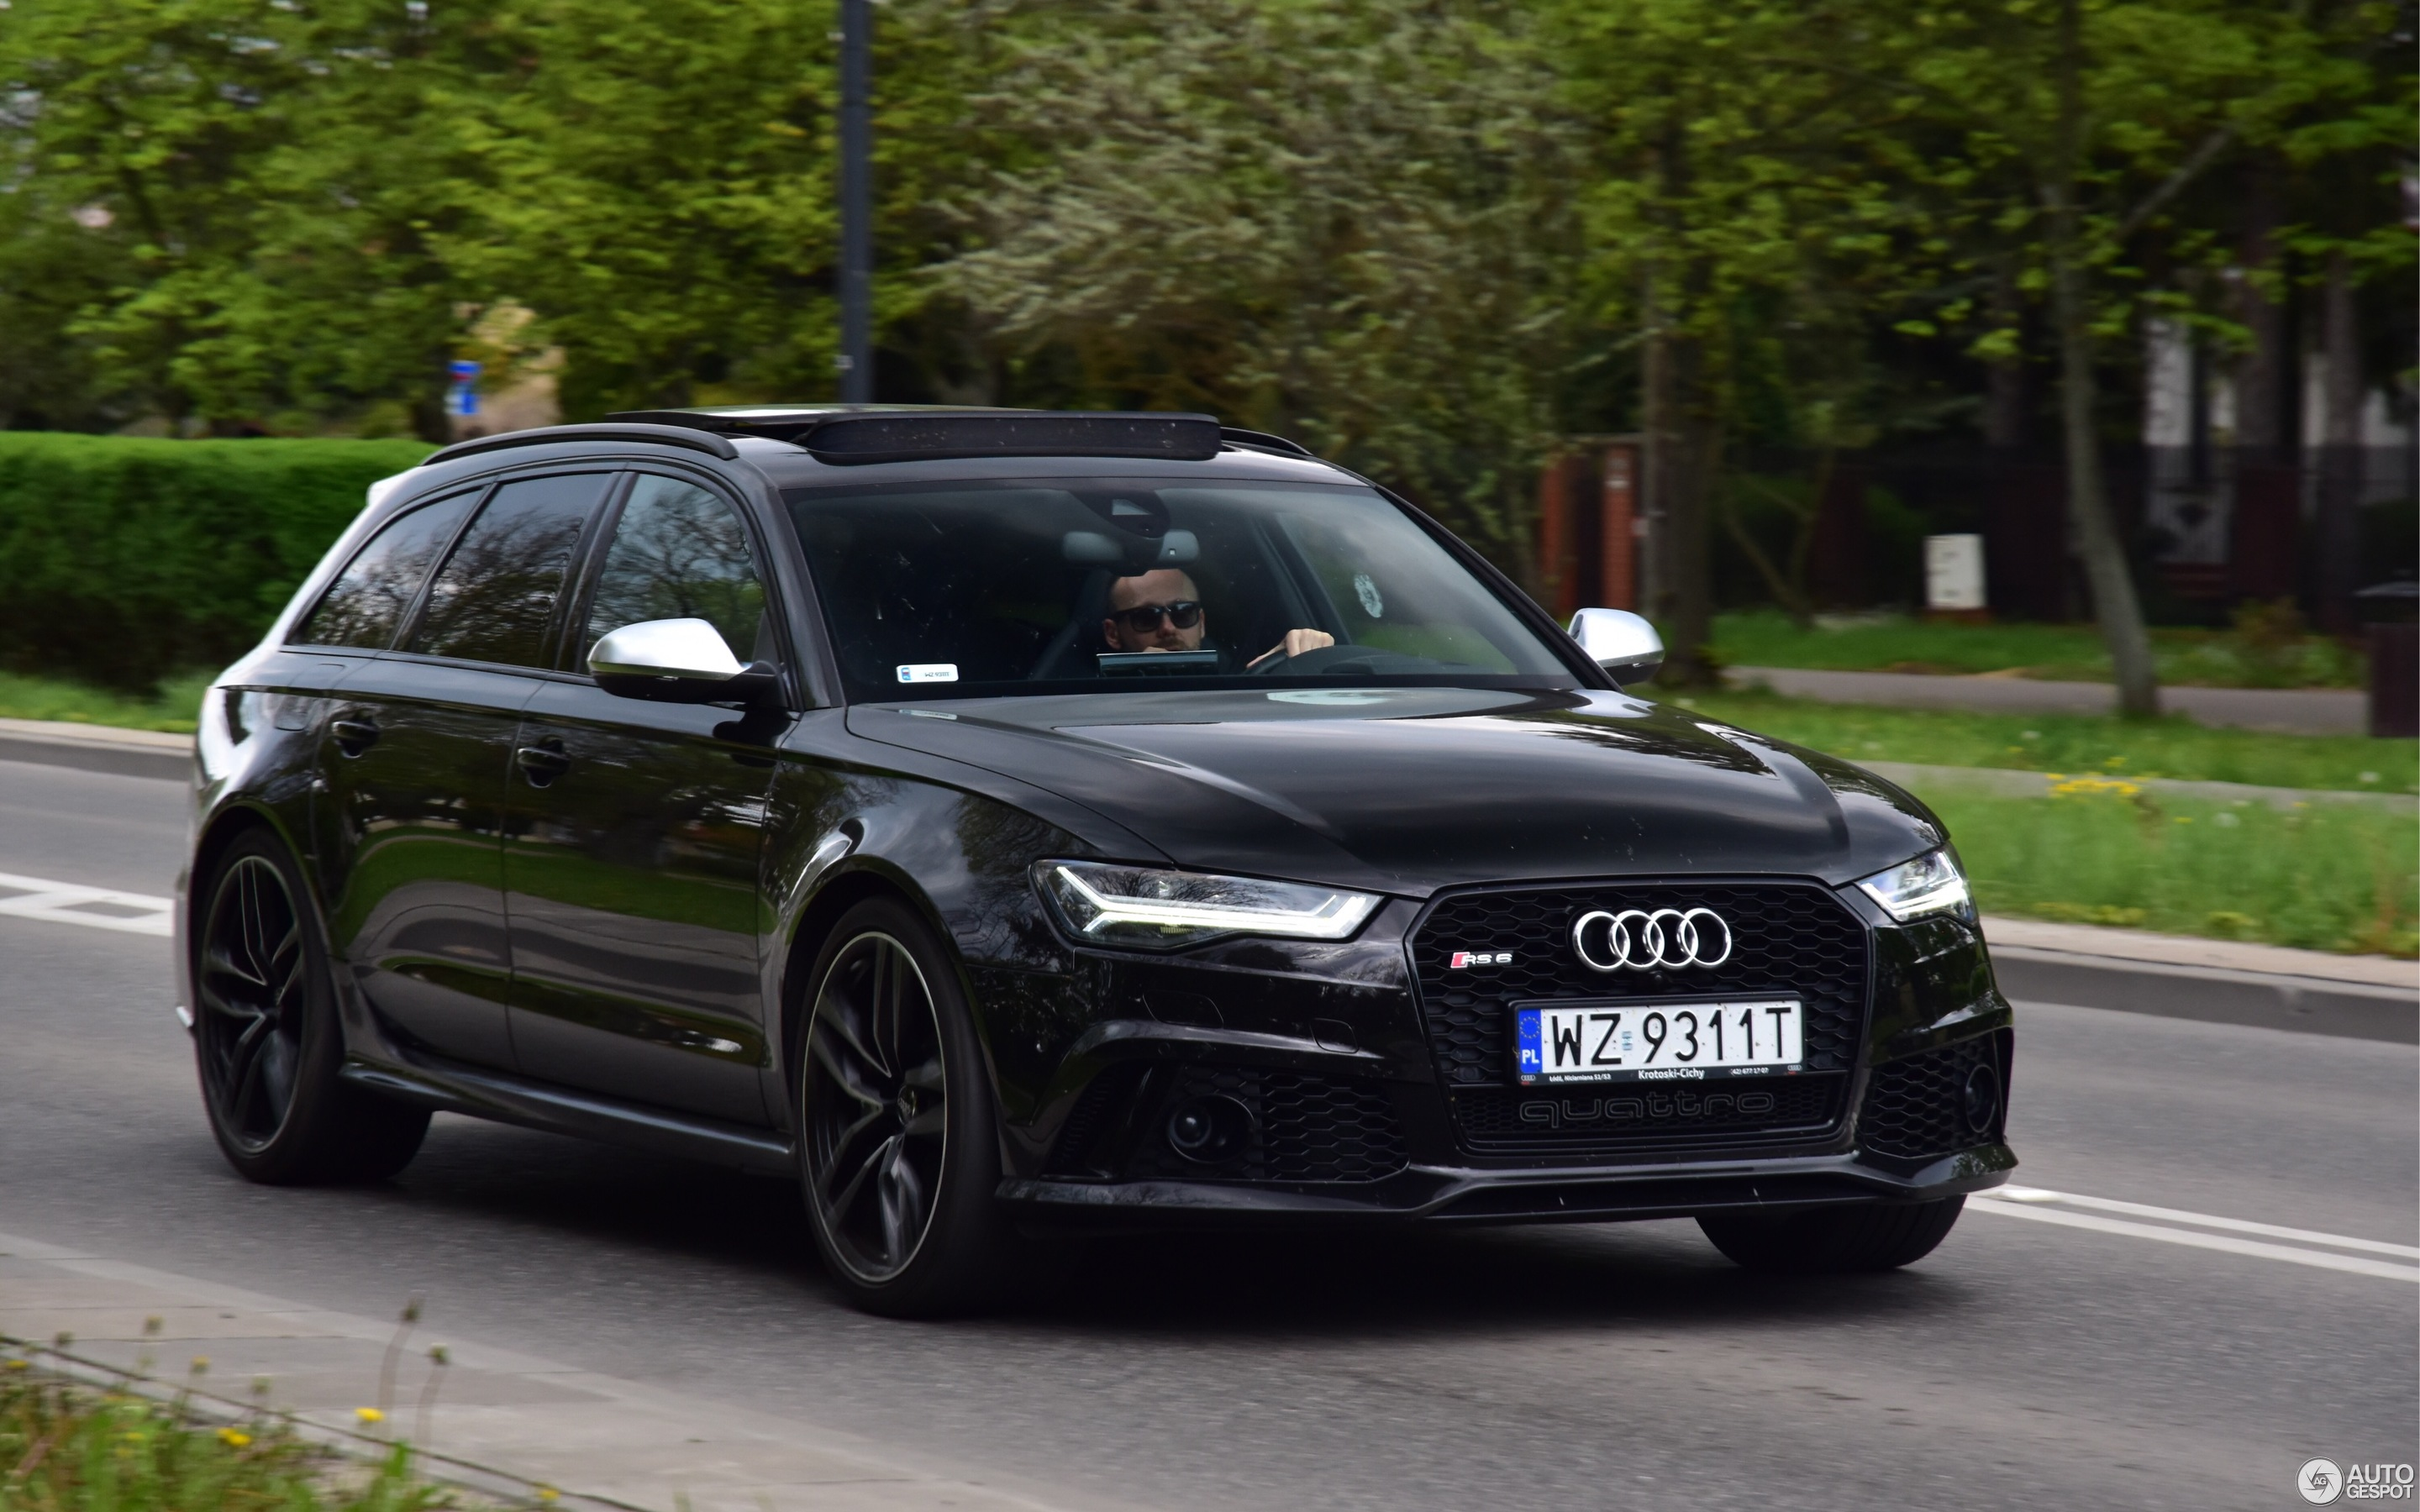 audi rs6 avant c7 2015 16 may 2017 autogespot. Black Bedroom Furniture Sets. Home Design Ideas